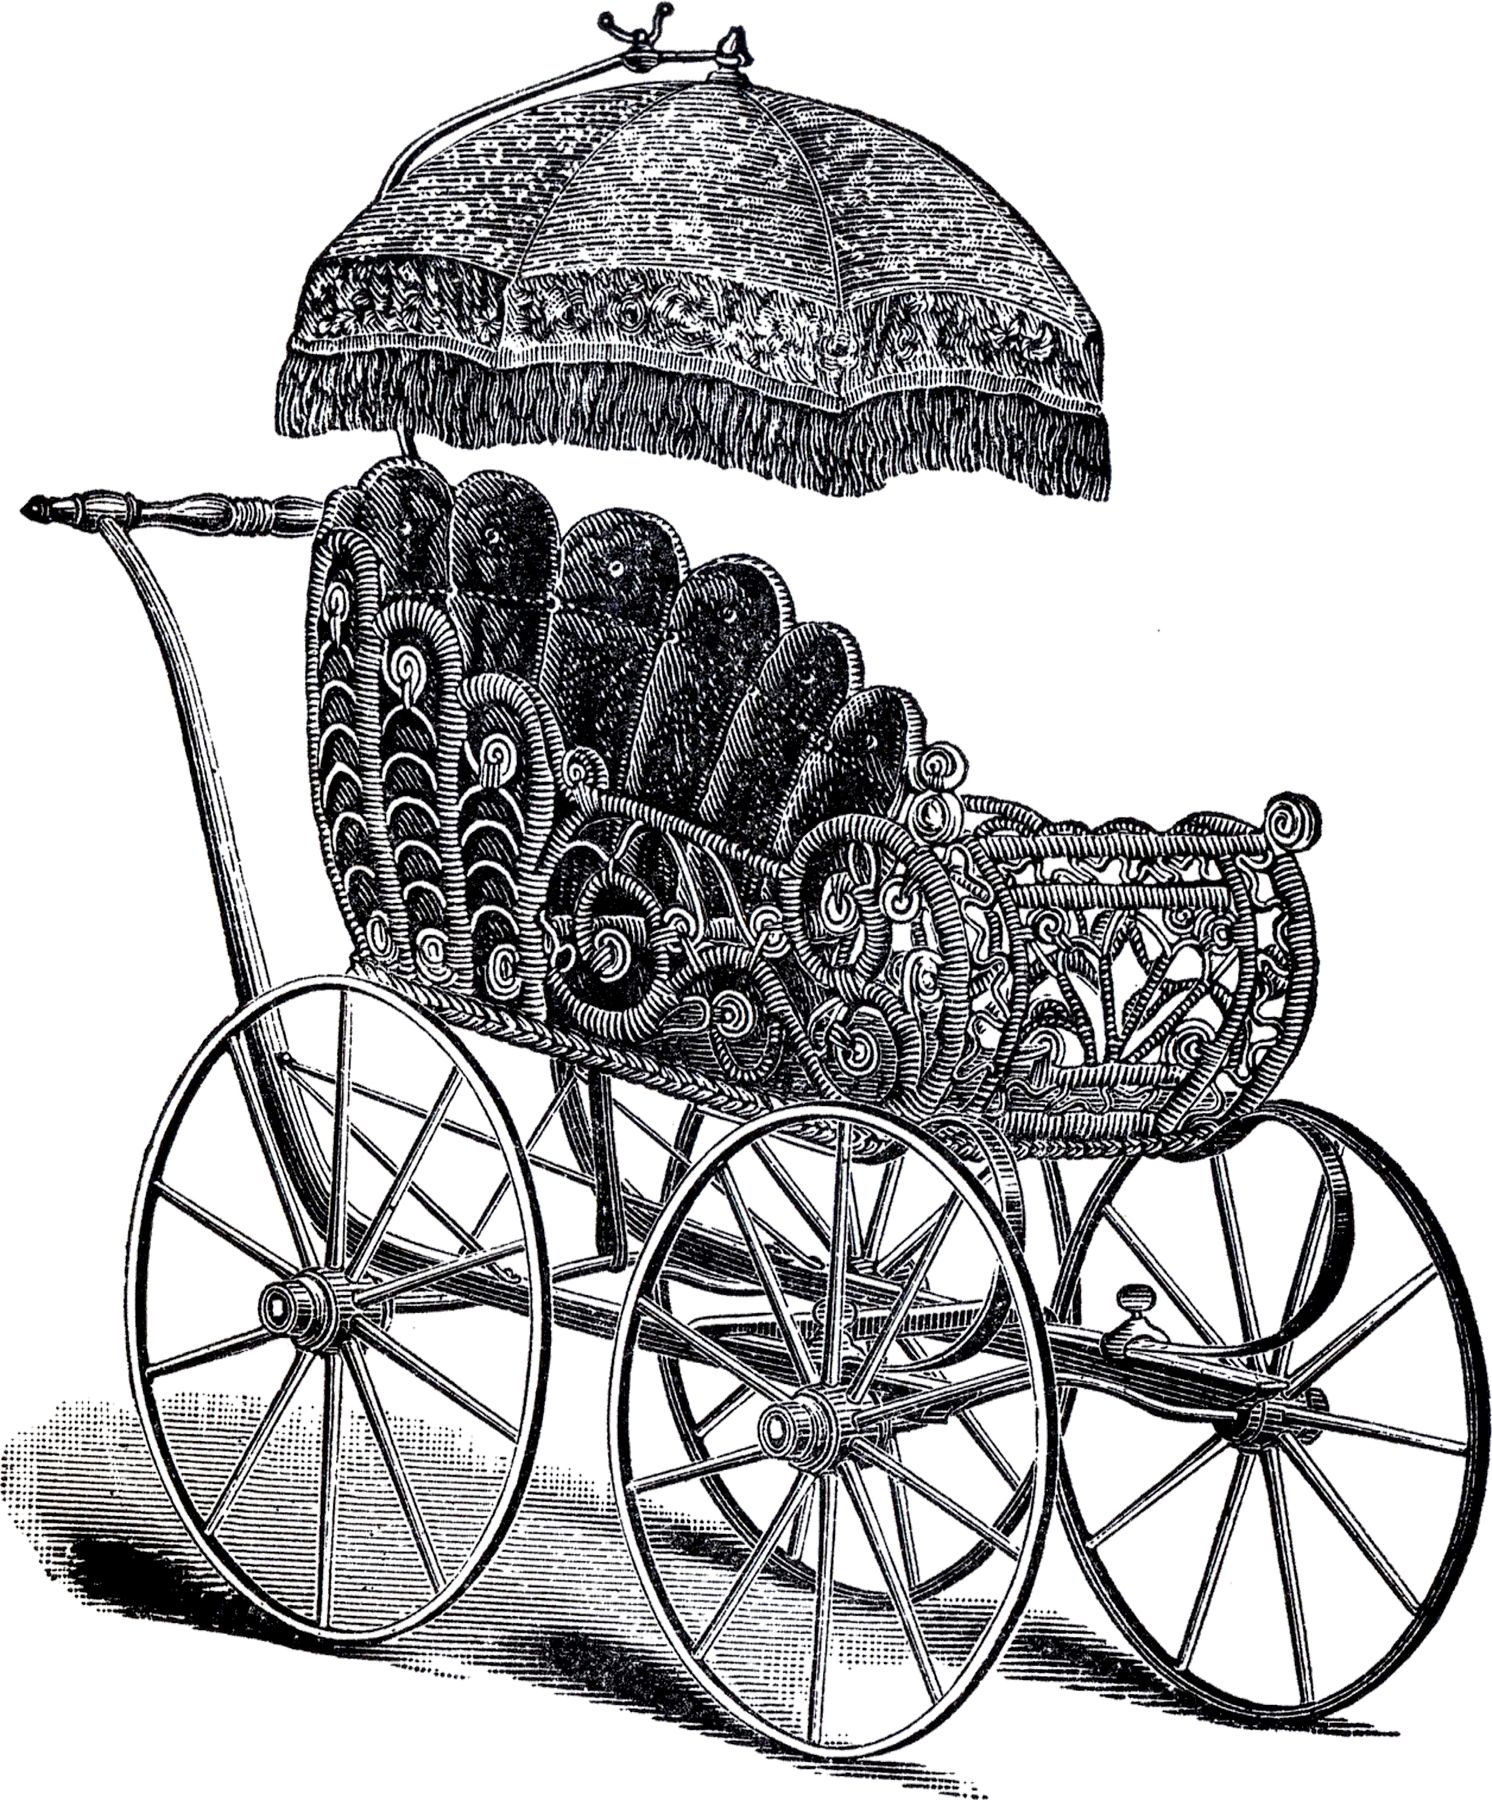 Vintage Wicker Baby Carriage Image The Graphics Fairy Baby Carriage Clip Art Vintage Vintage Wicker